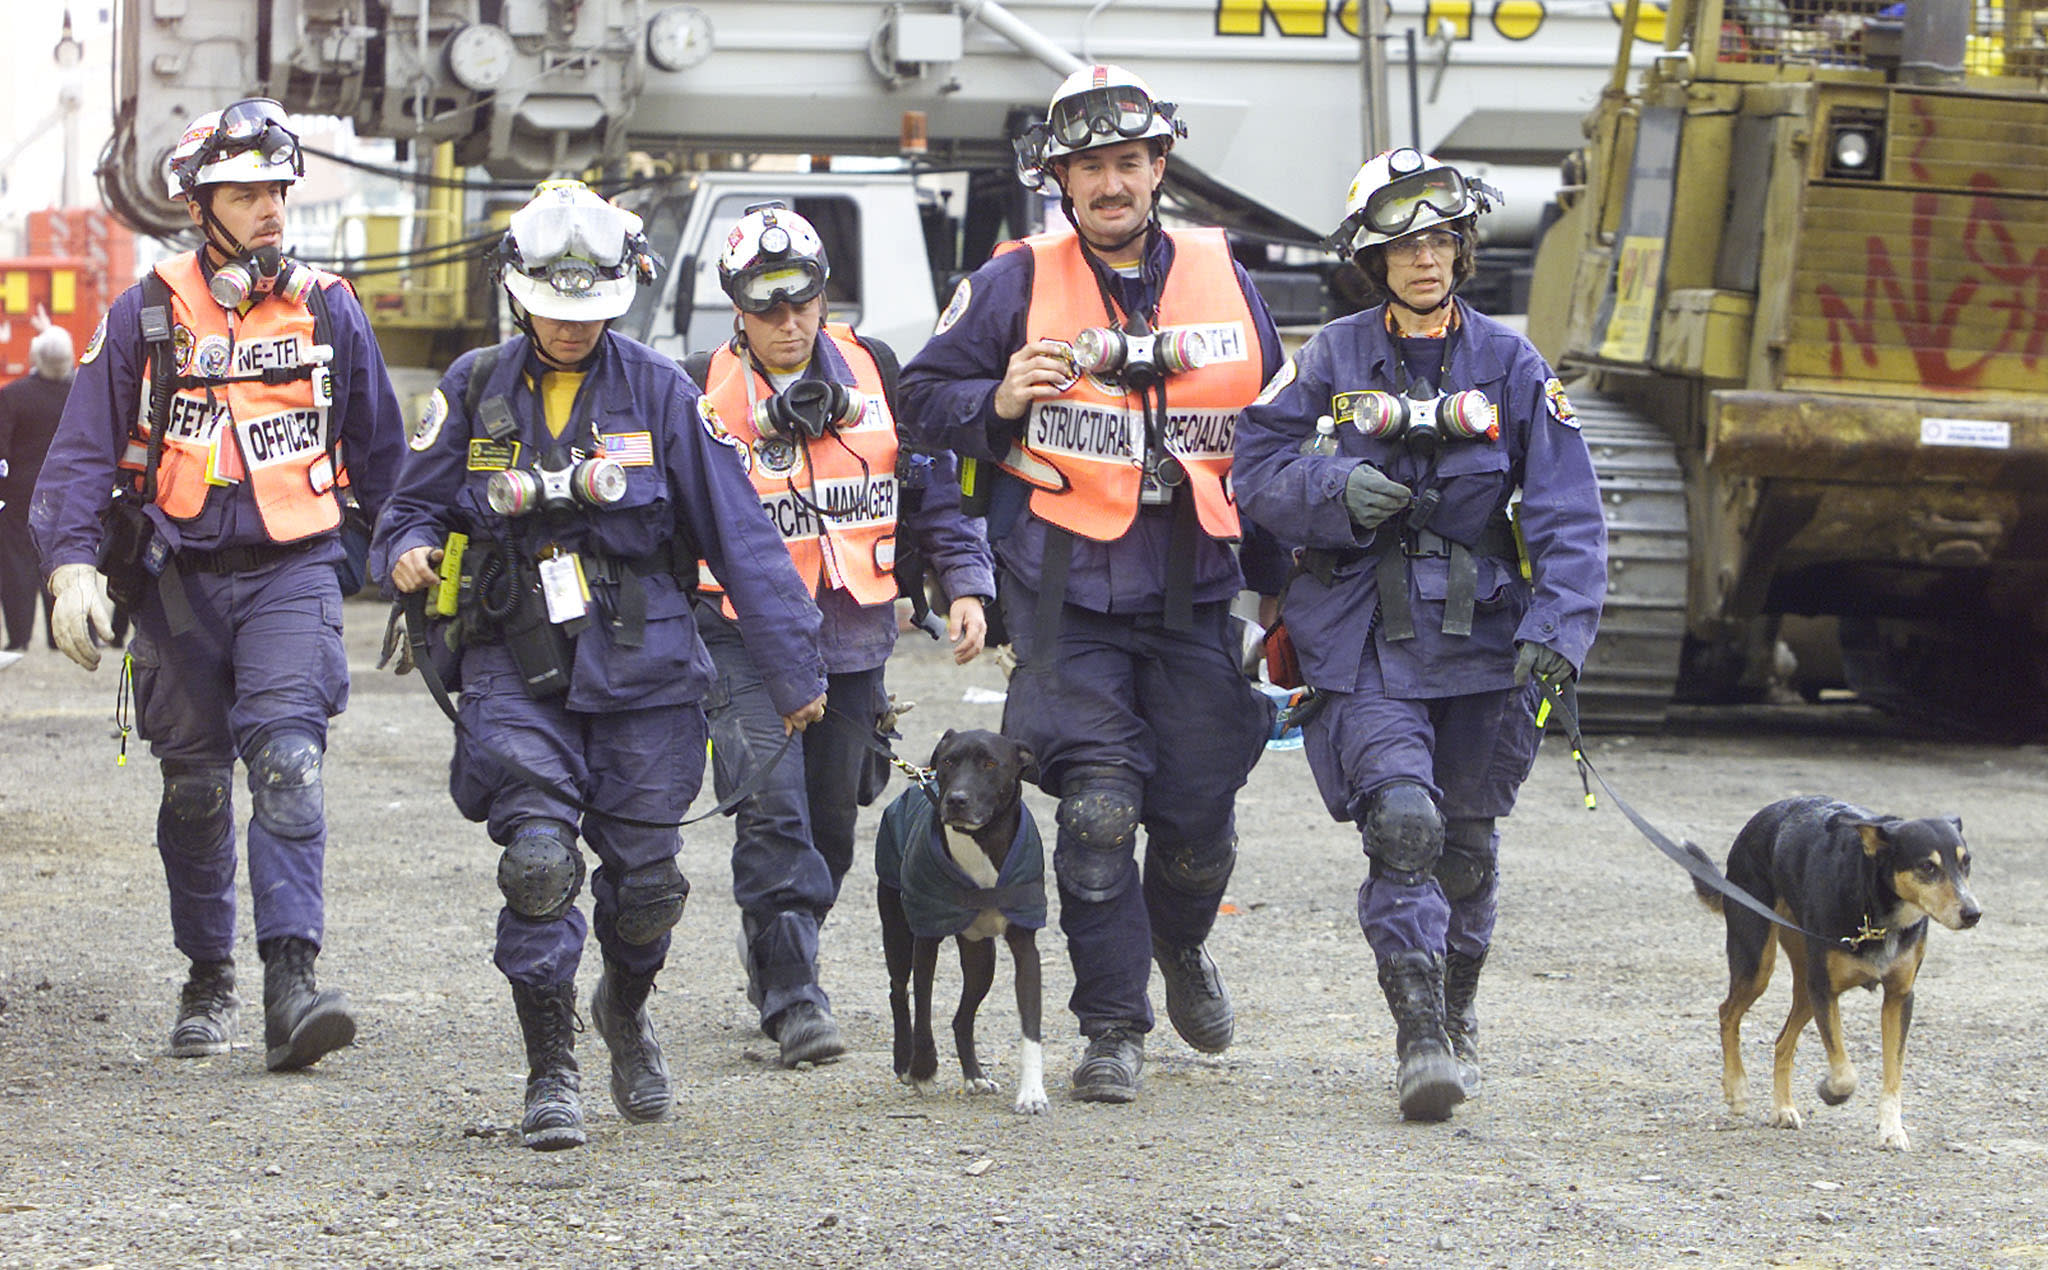 """A group of rescue workers with dogs leave the """"ground zero"""" site of the World Trade Center in New York City, September 29, 2001. (REUTERS/Jeff Christensen)"""